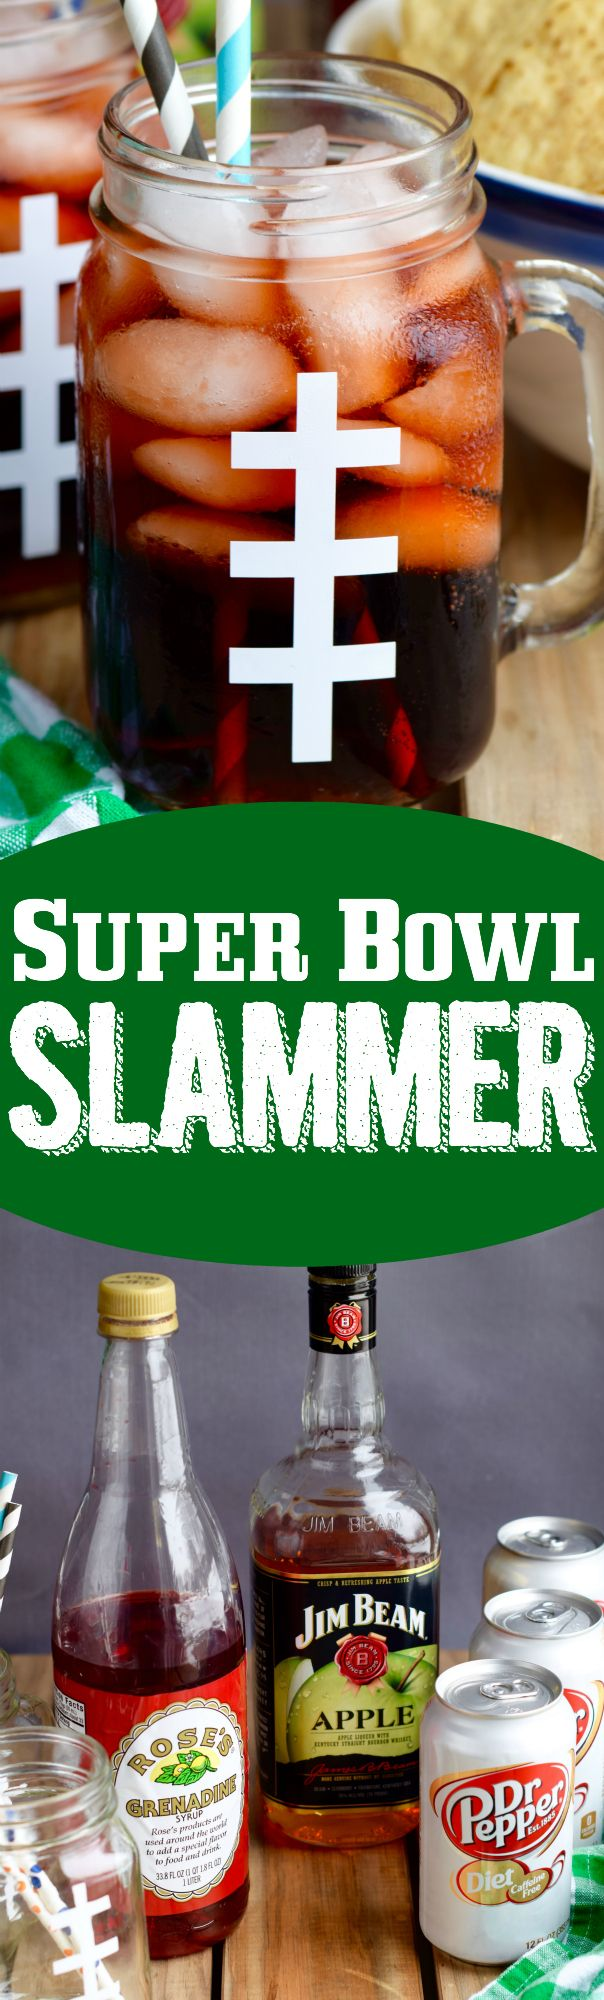 These Super Bowl Slammers are a simple Dr Pepper Cocktail that is perfect for gameday or any day! Make them even more fun sharing them in these easy DIY Football Glasses!   Wine & Glue {Must have missed this last year, ~ Janelle/Snow =^..^=}